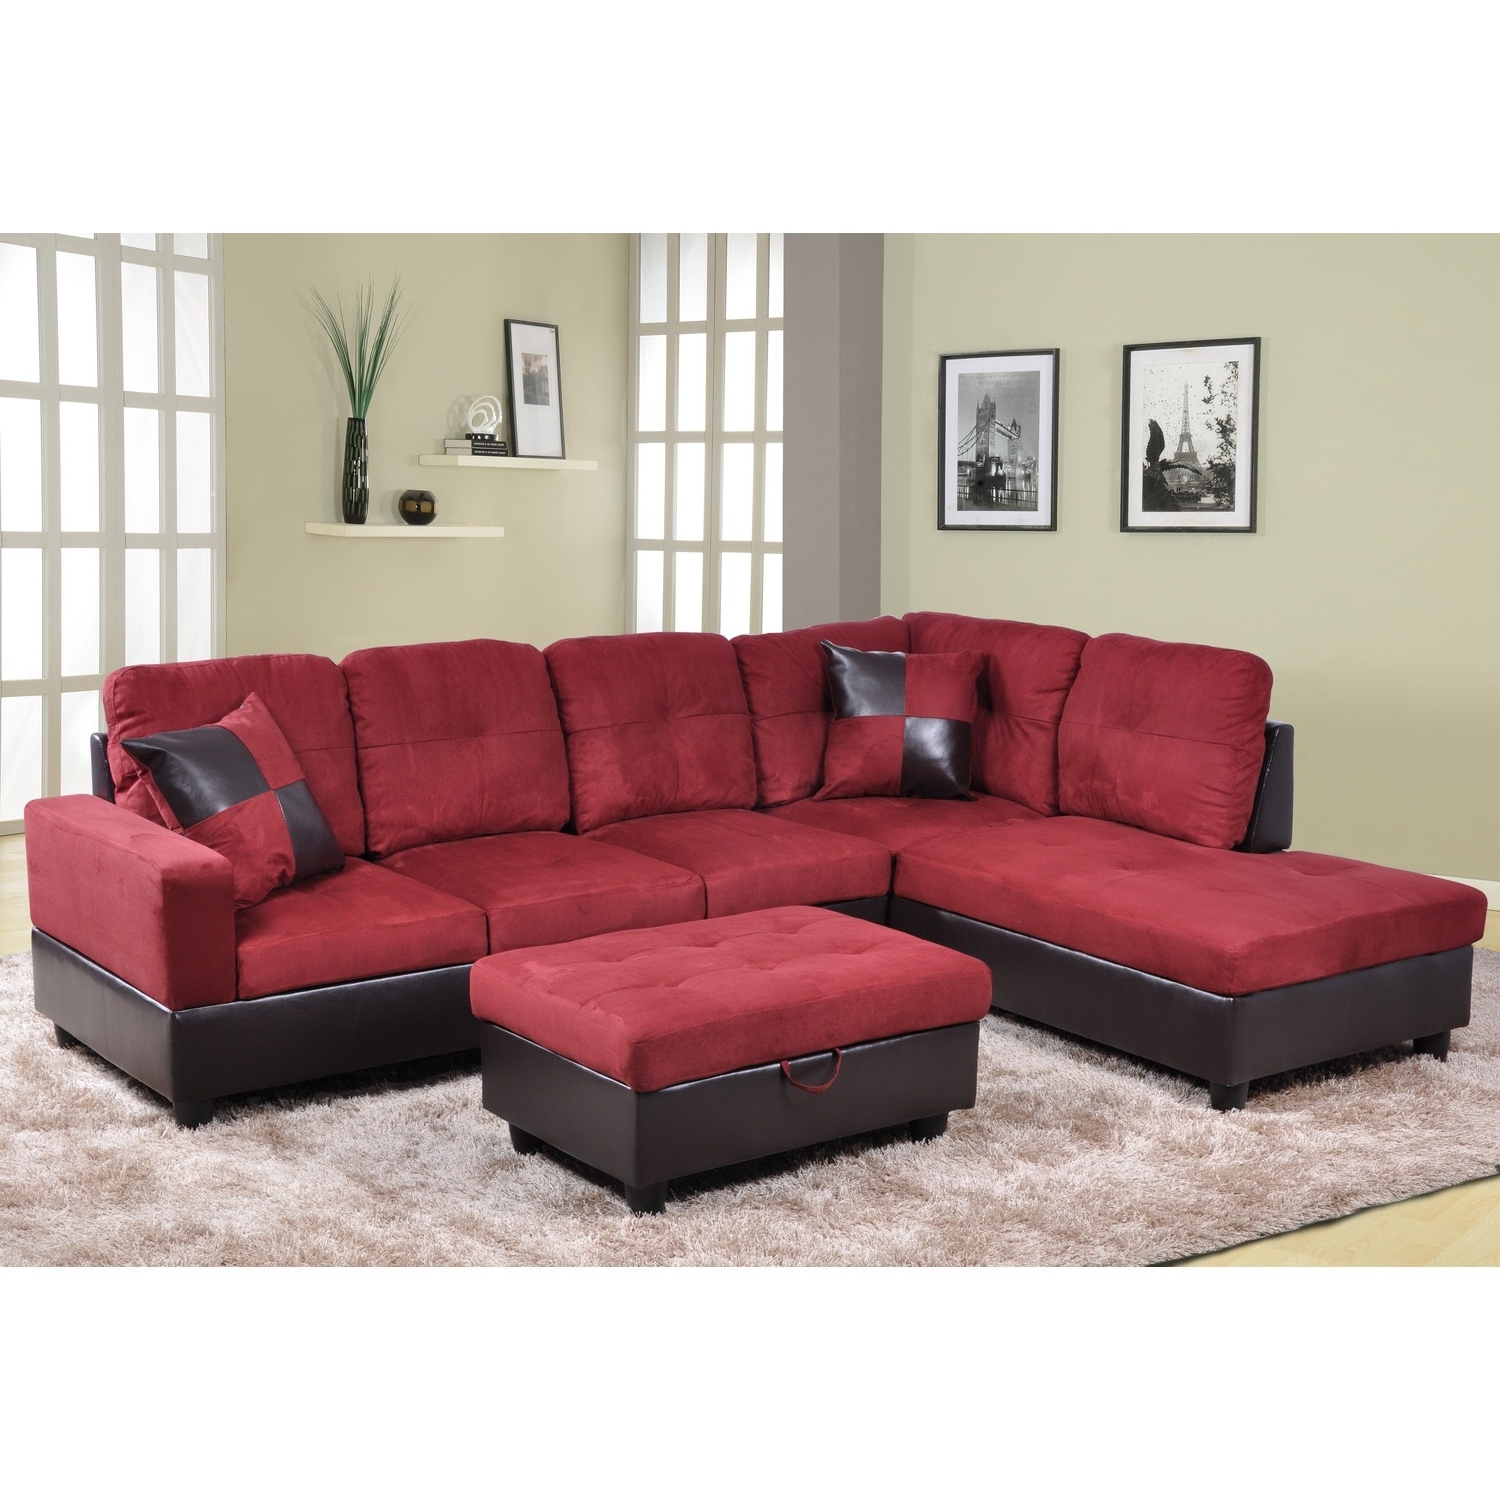 Famous Sears Sectional Sofas With Regard To Cheap Sectional Sofas For Sale Inspirational Furniture Sears Sofa (View 1 of 15)